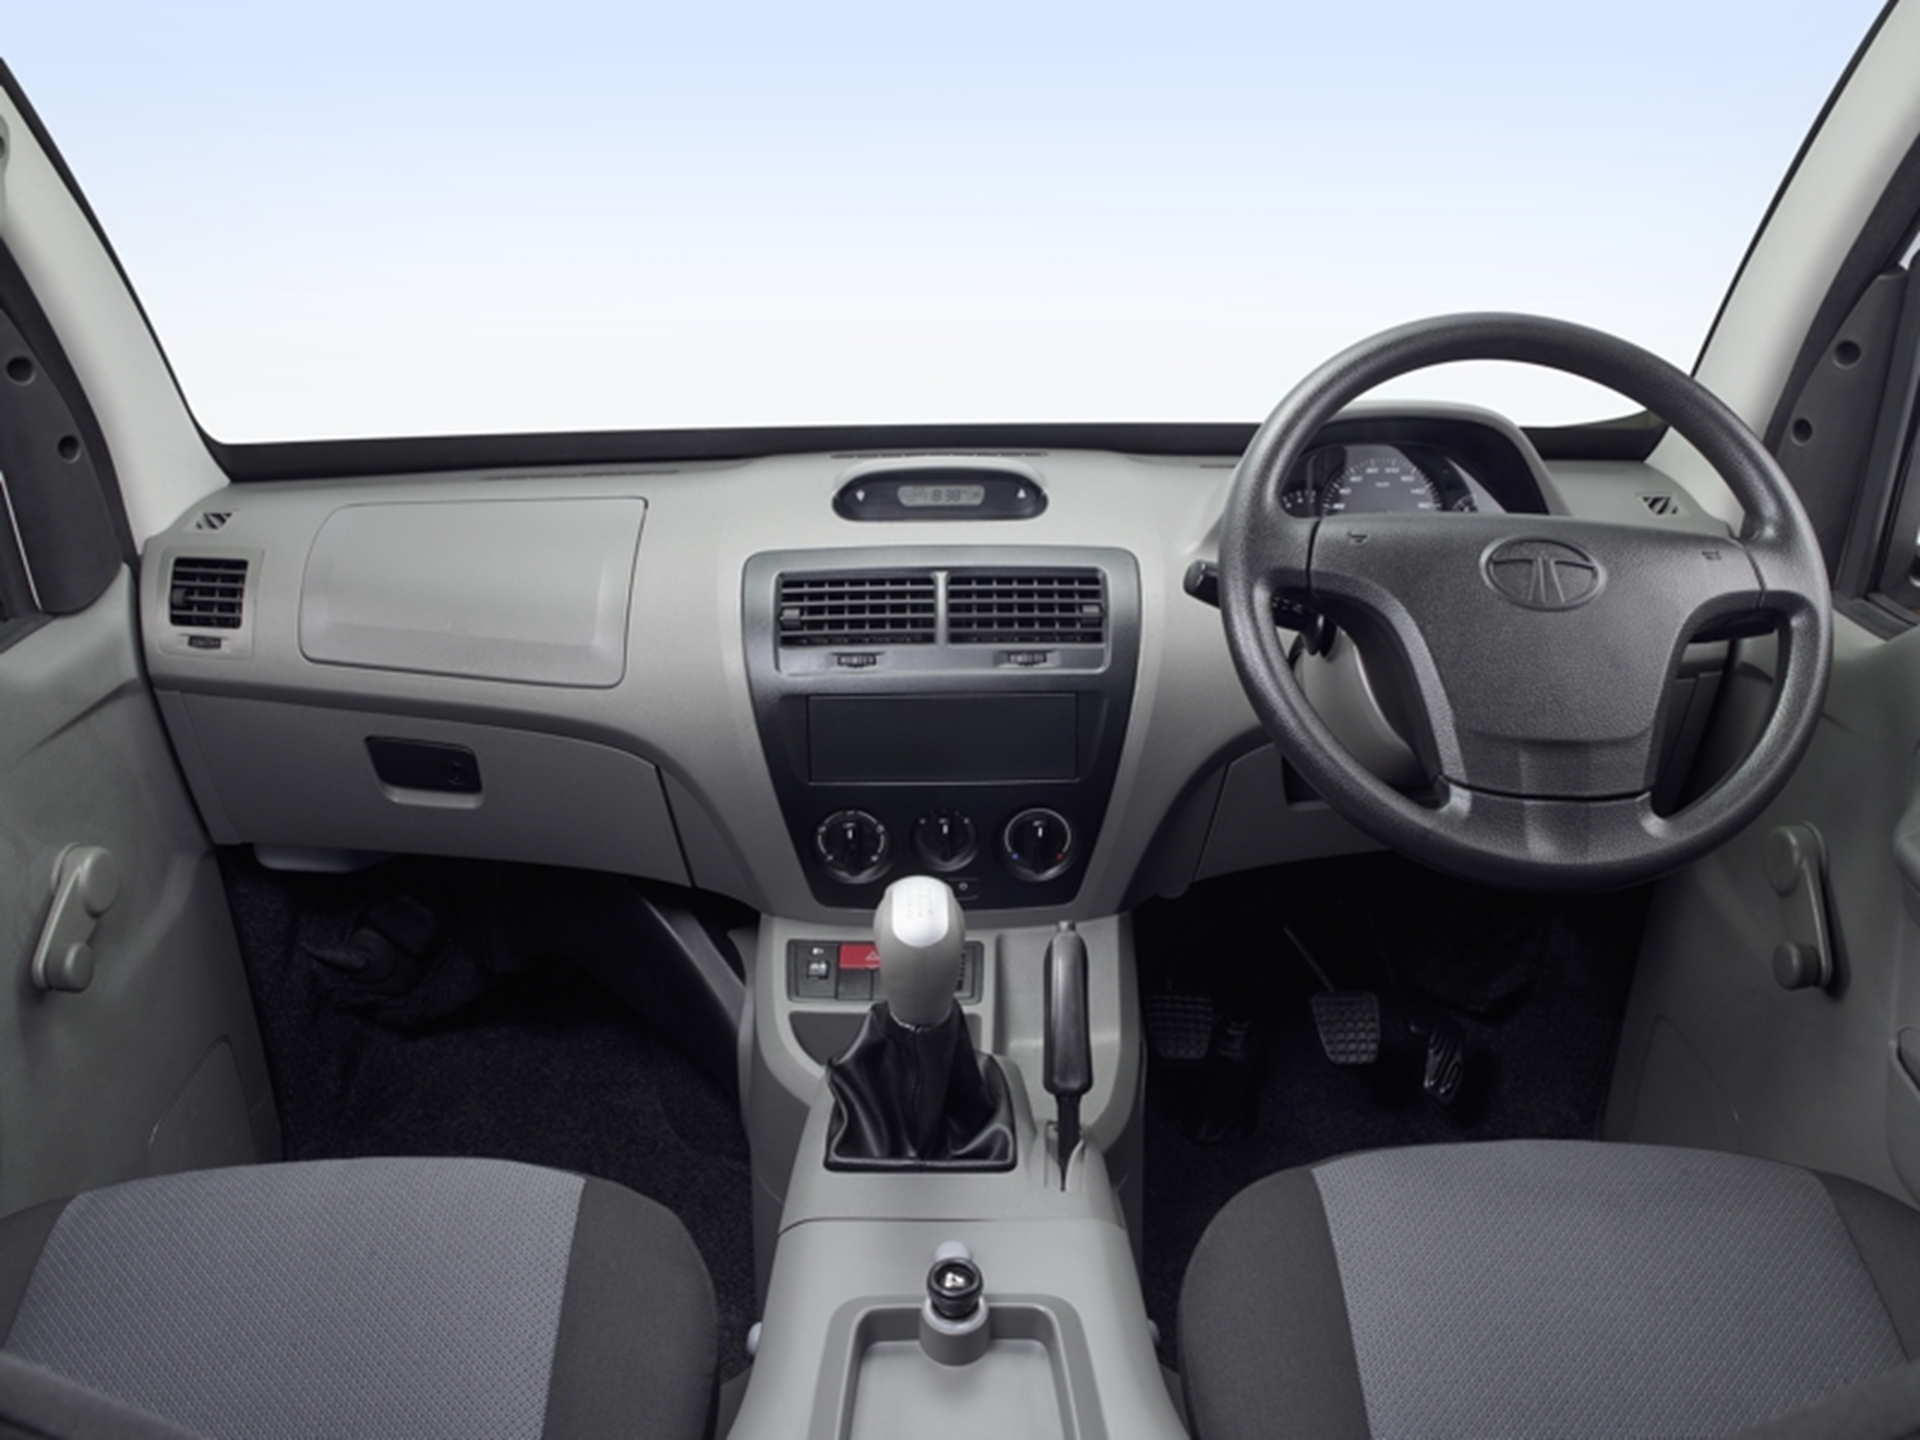 Tata Super Ace Inside